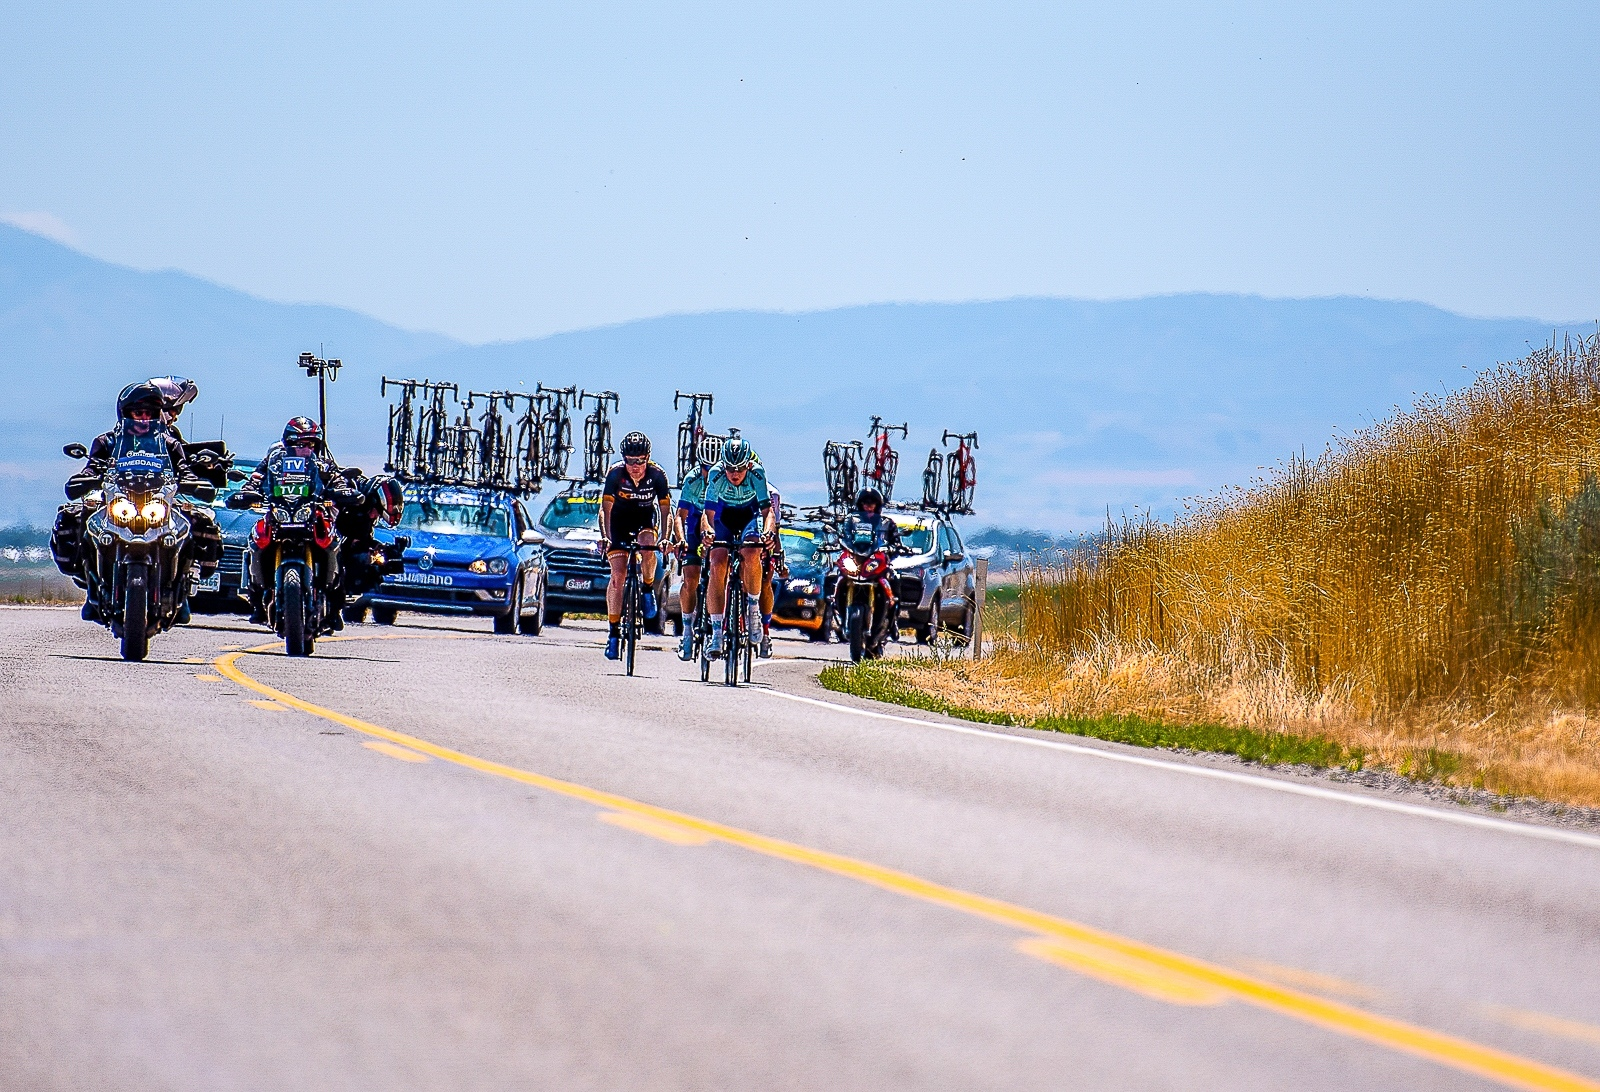 The early break on Utah State Road 23 outside Newton, Utah. Stage 1, 2019 Tour of Utah. Photo by Steven L. Sheffield